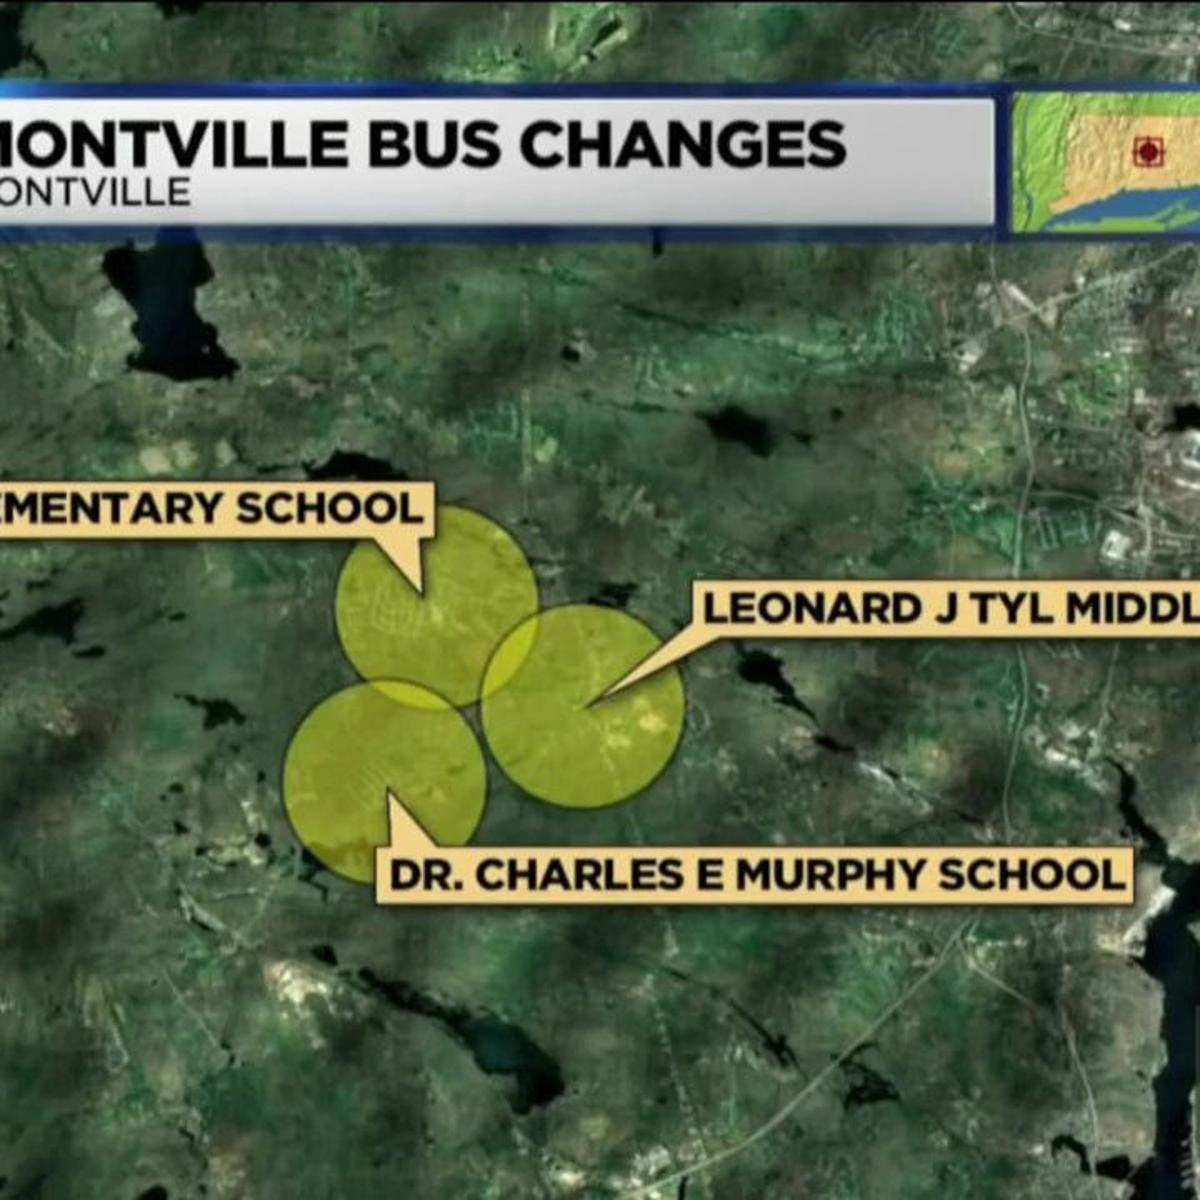 VIDEO: Parents raise concerns about new bus policy in Montville